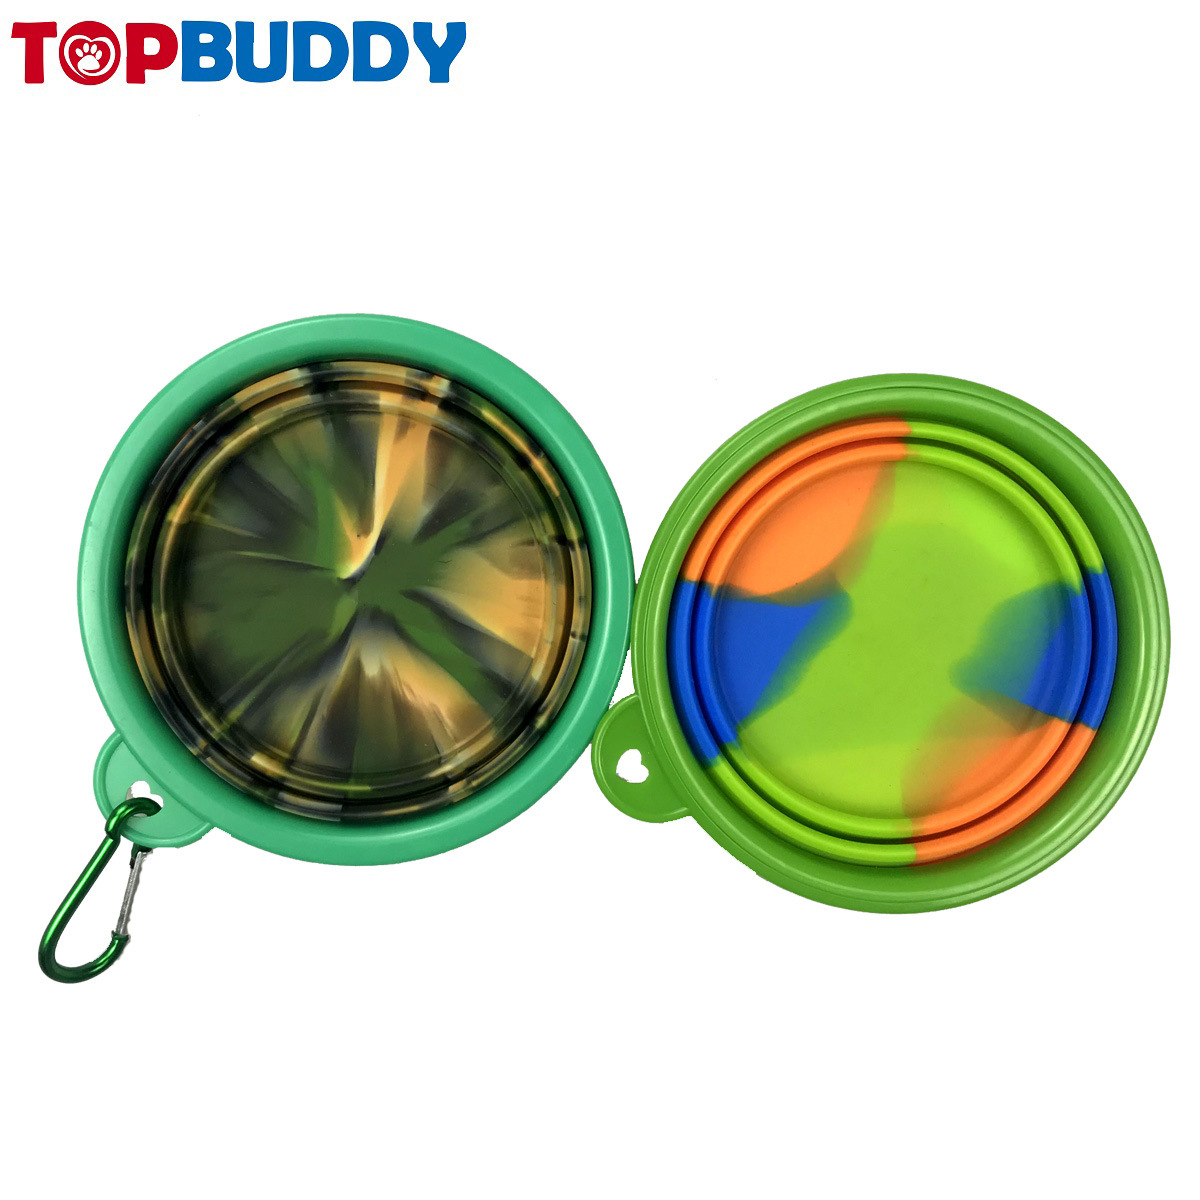 Portable Dog Bowl Environmentally Friendly Non-toxic Carabiner Pet Folding Environmentally Friendly Edible Silicon Folding Basin